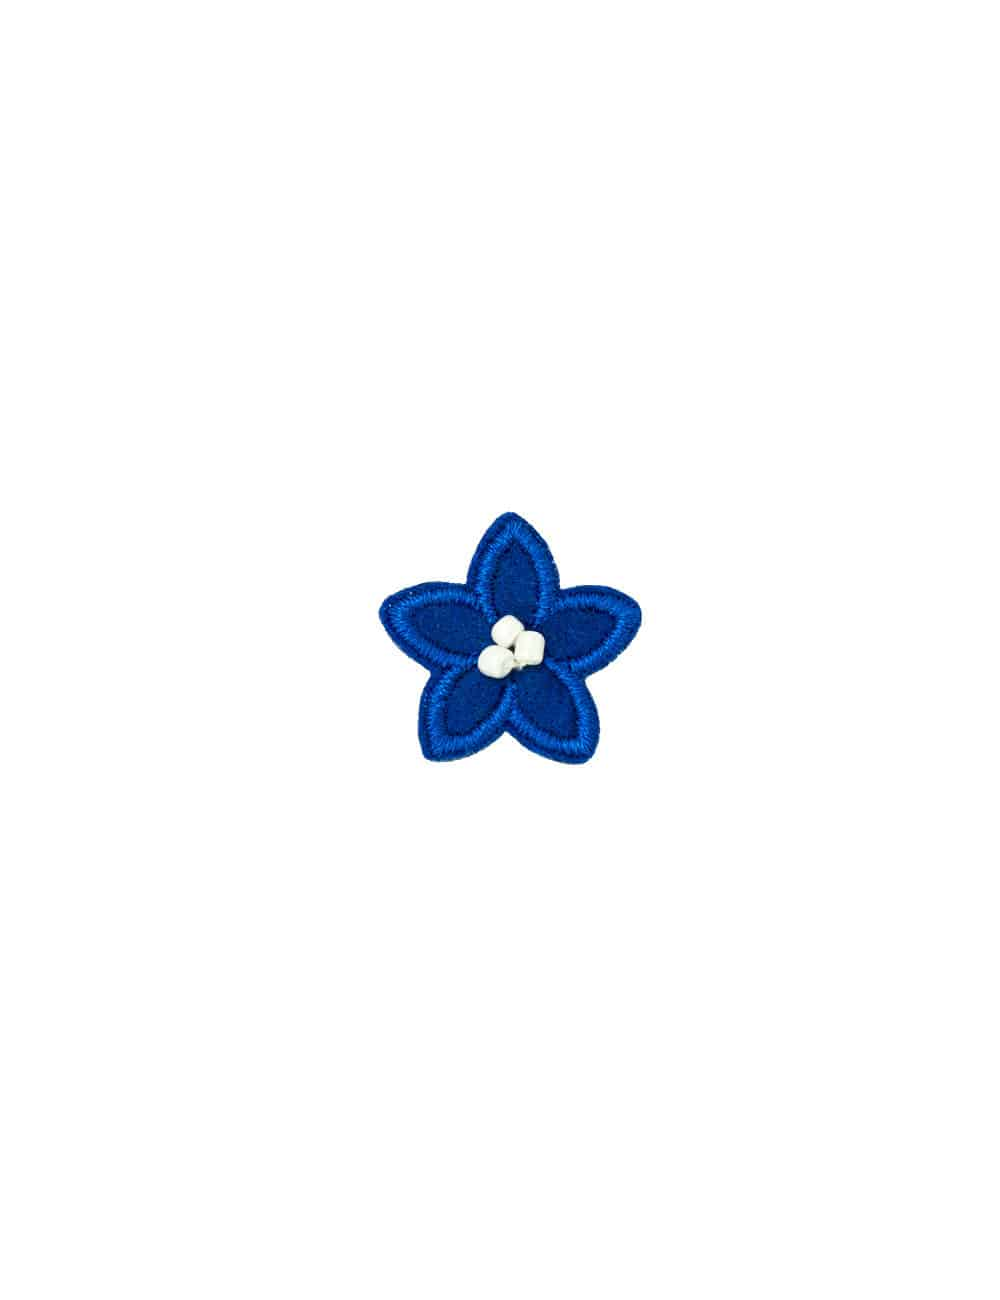 Blue with White Floral Lapel Pin LP12.10